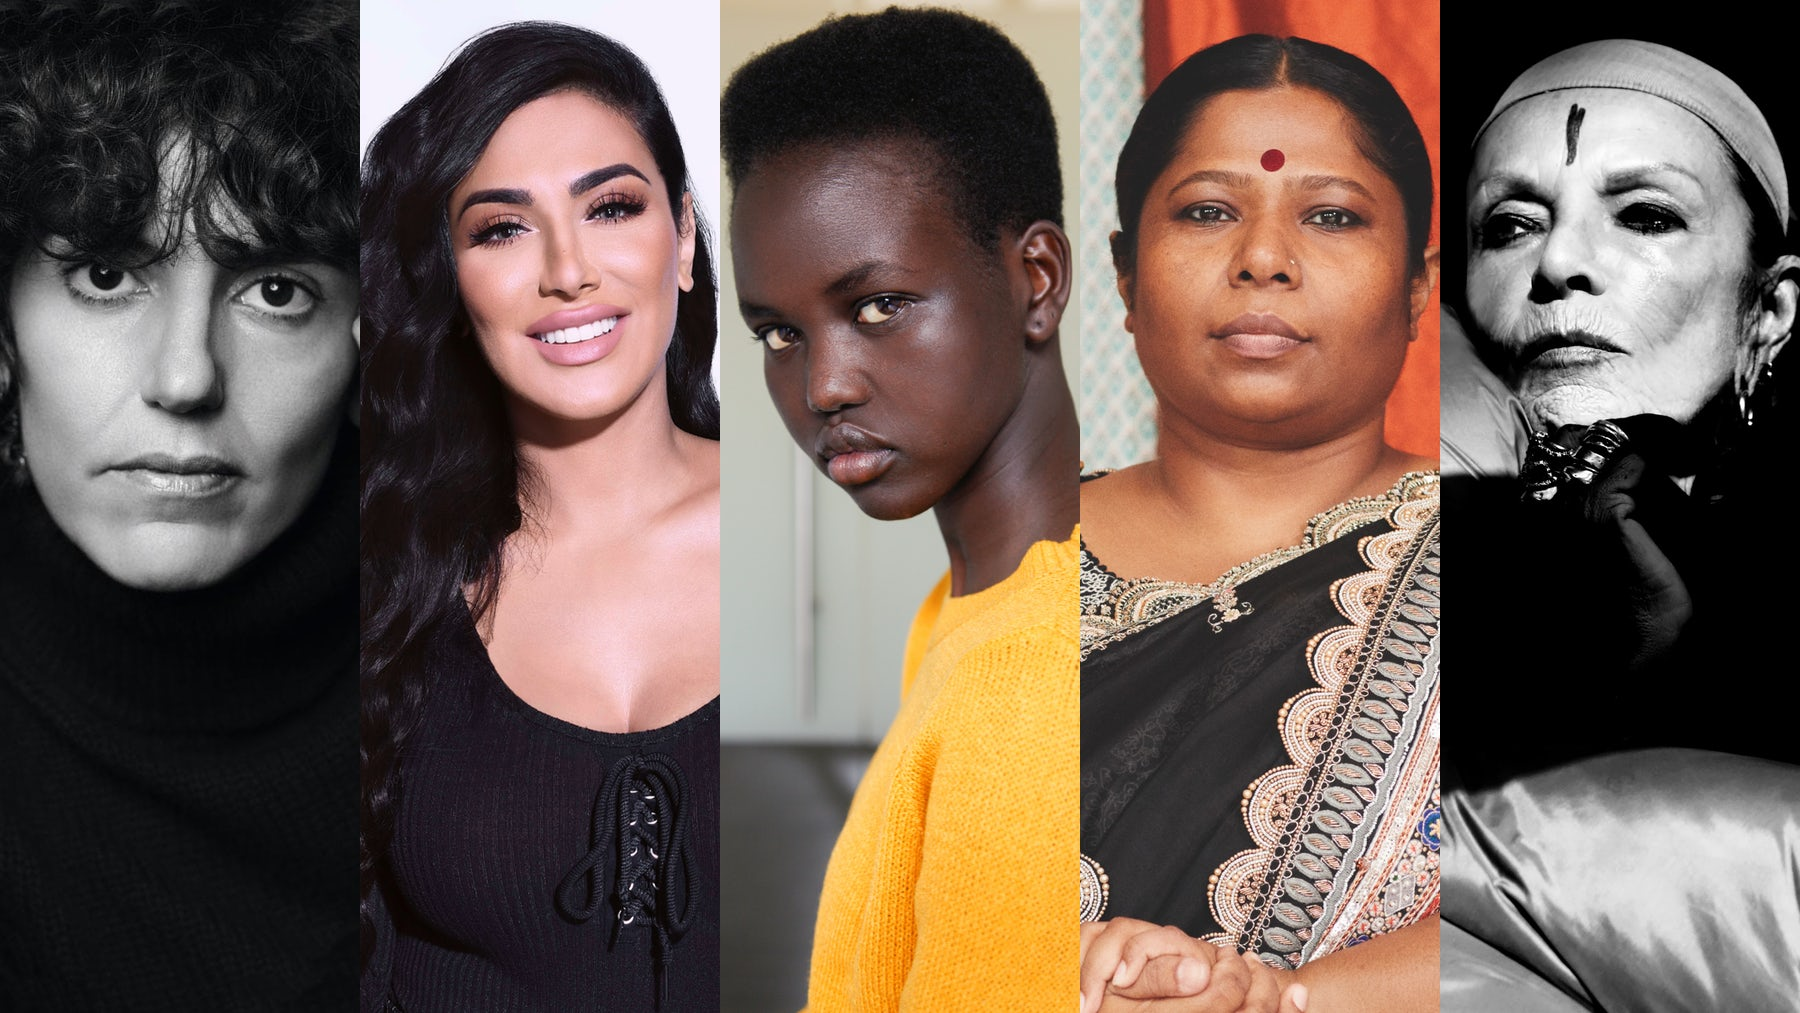 Francesca Bellettini, Huda Kattan, Adut Akech, Kalpona Akter and Michèle Lamy | Source: Courtesy